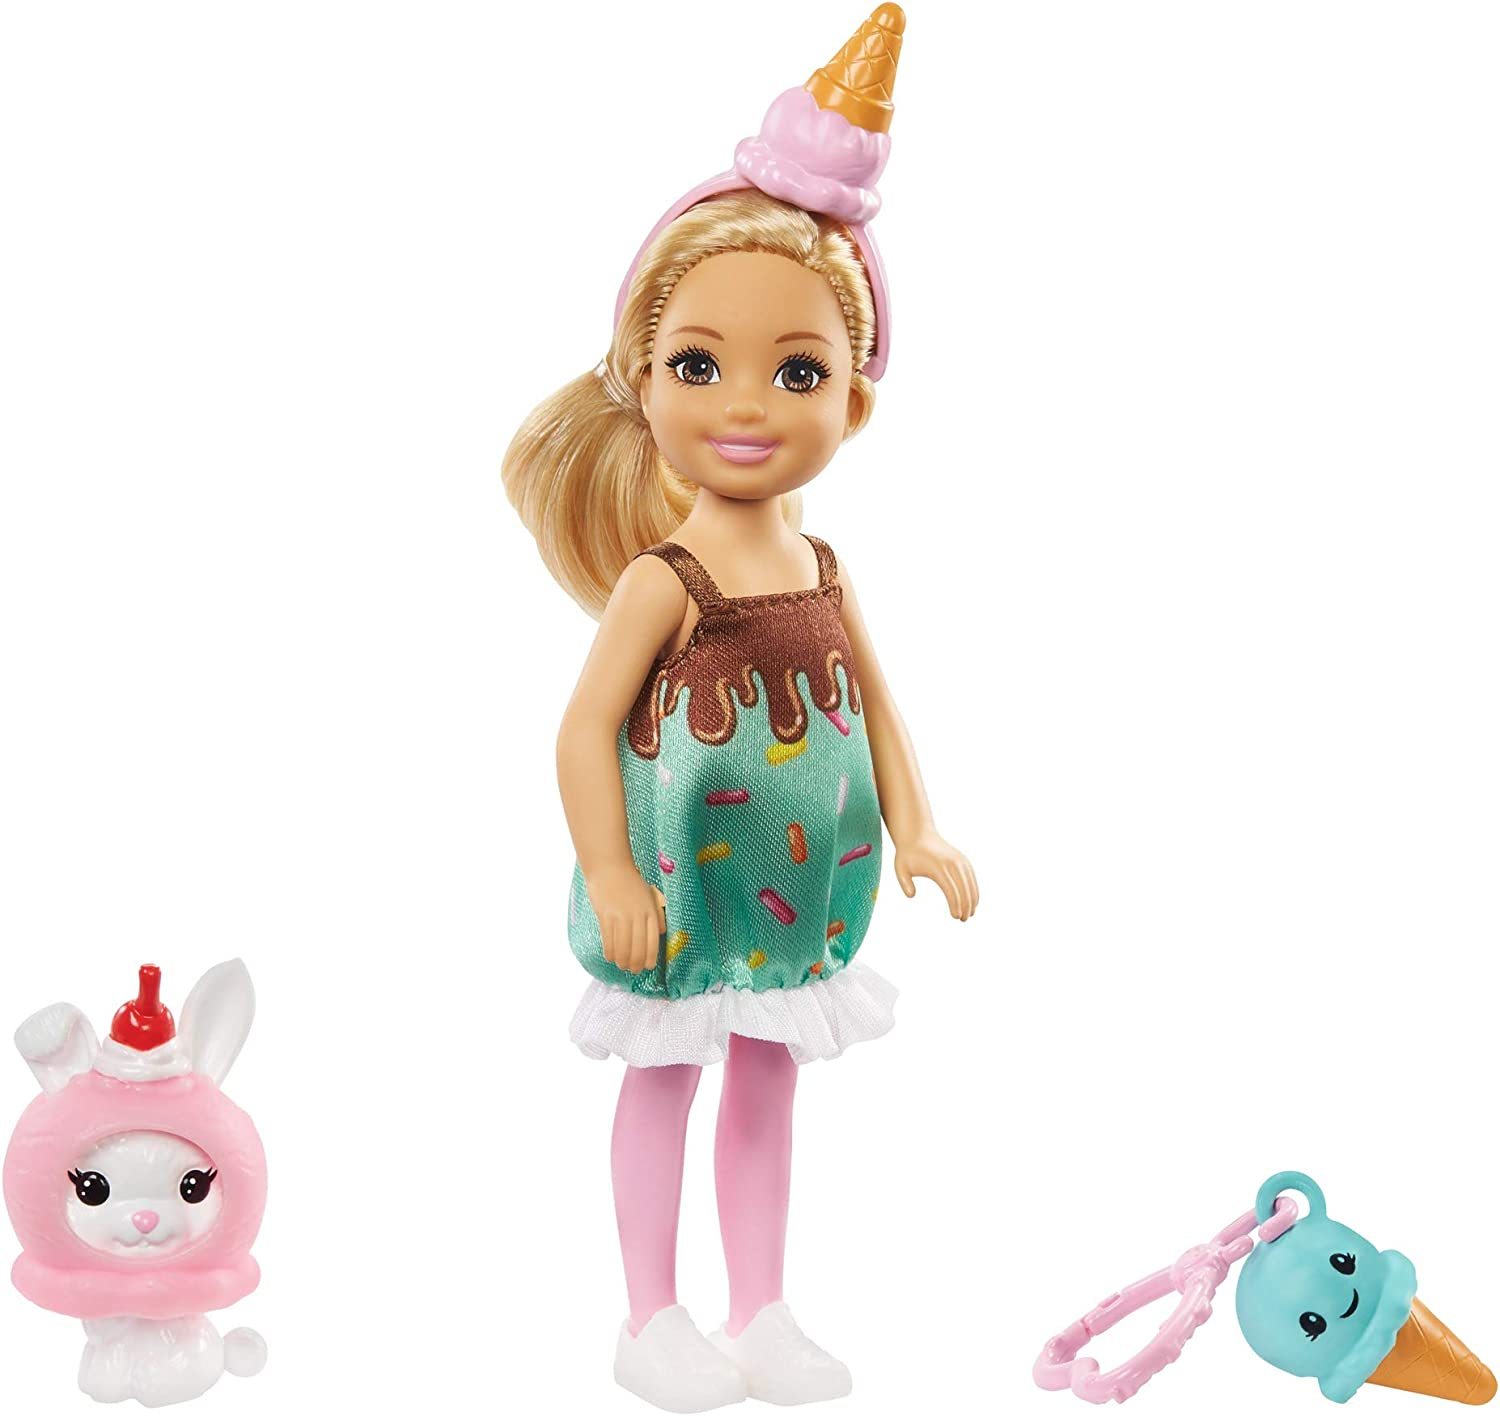 Barbie Club Chelsea Dress-Up Doll, 6-inch Blonde in Ice Cream Costume with Pet Bunny and Accessories, Gift for 3 to 7 Year Olds